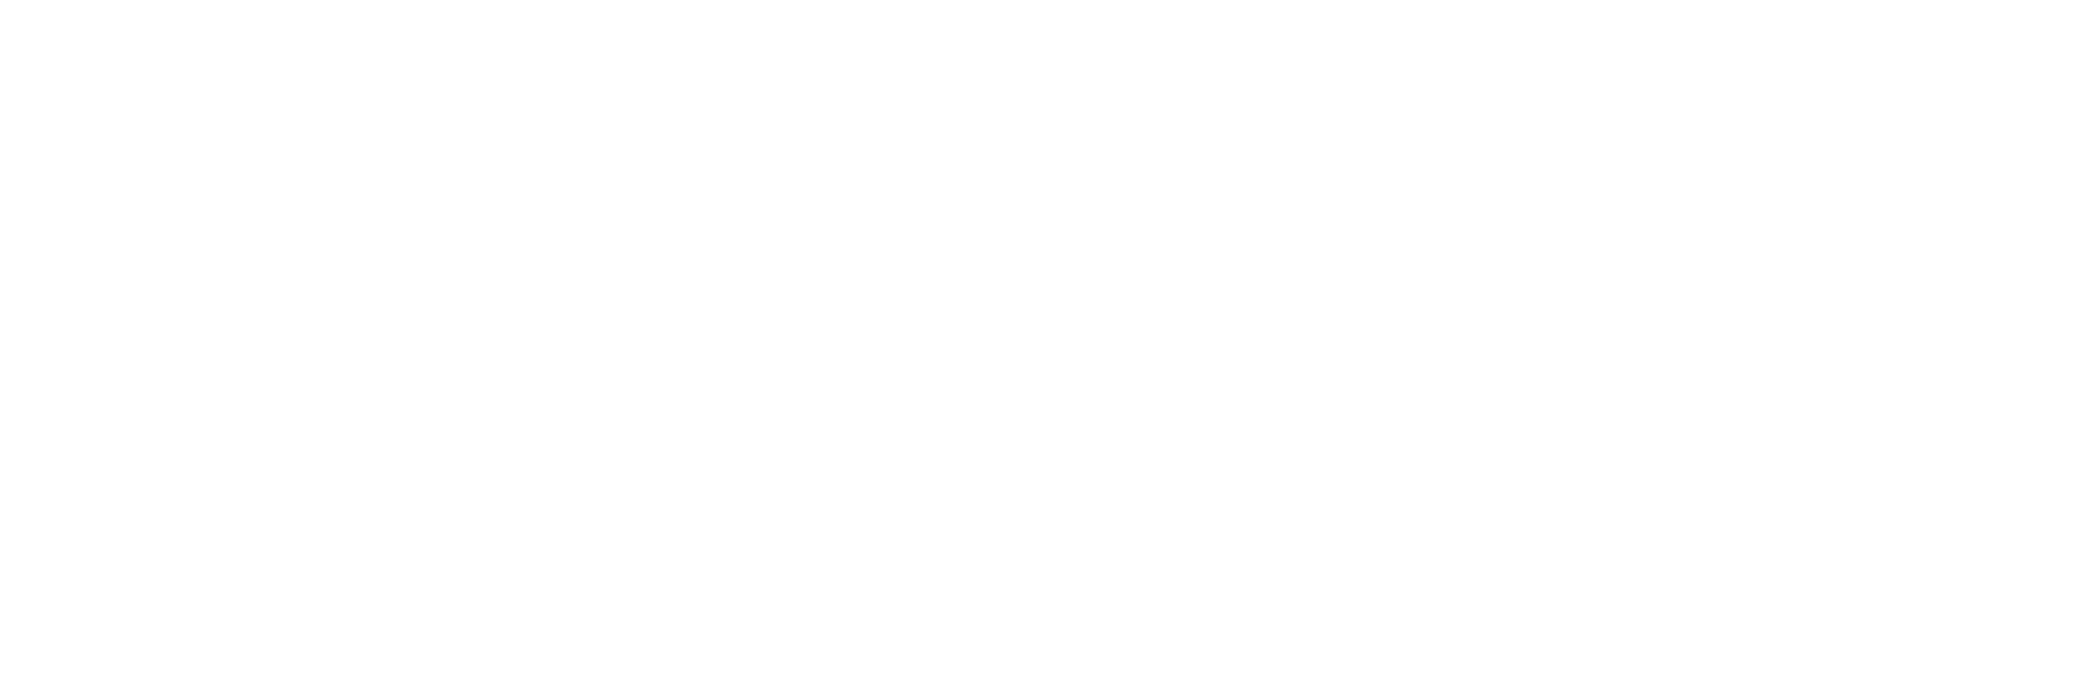 Get it on Oculus devices